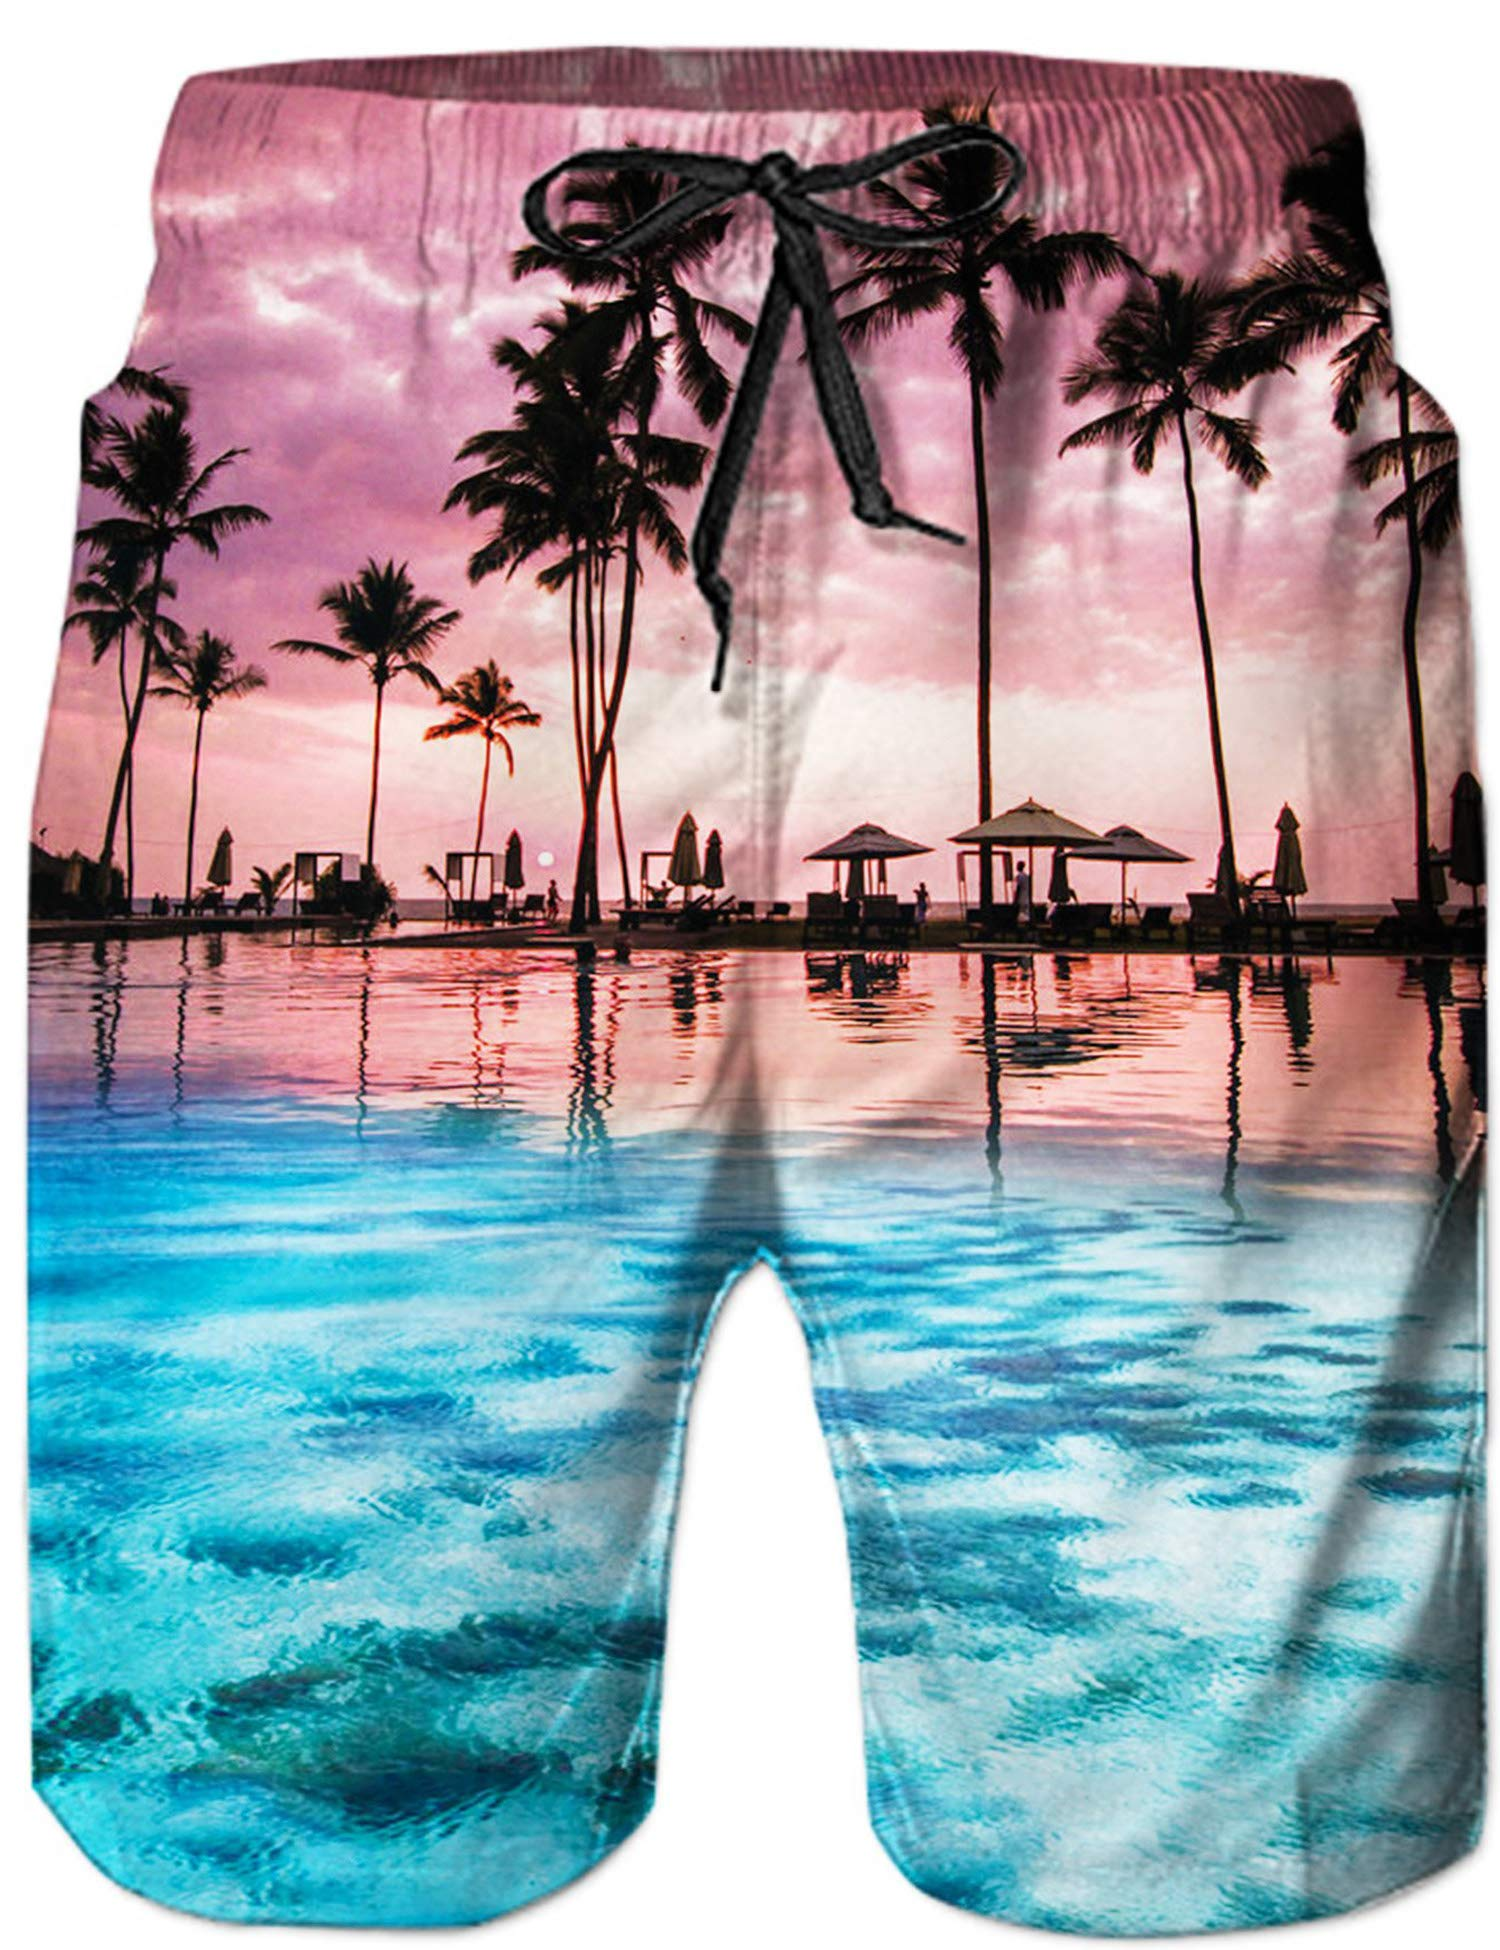 c69f38c332753 UNIFACO Teen Junior's Board Shorts Print Swimming Trunks Quick Drying  Hawaiian Boardwear with Pockets S